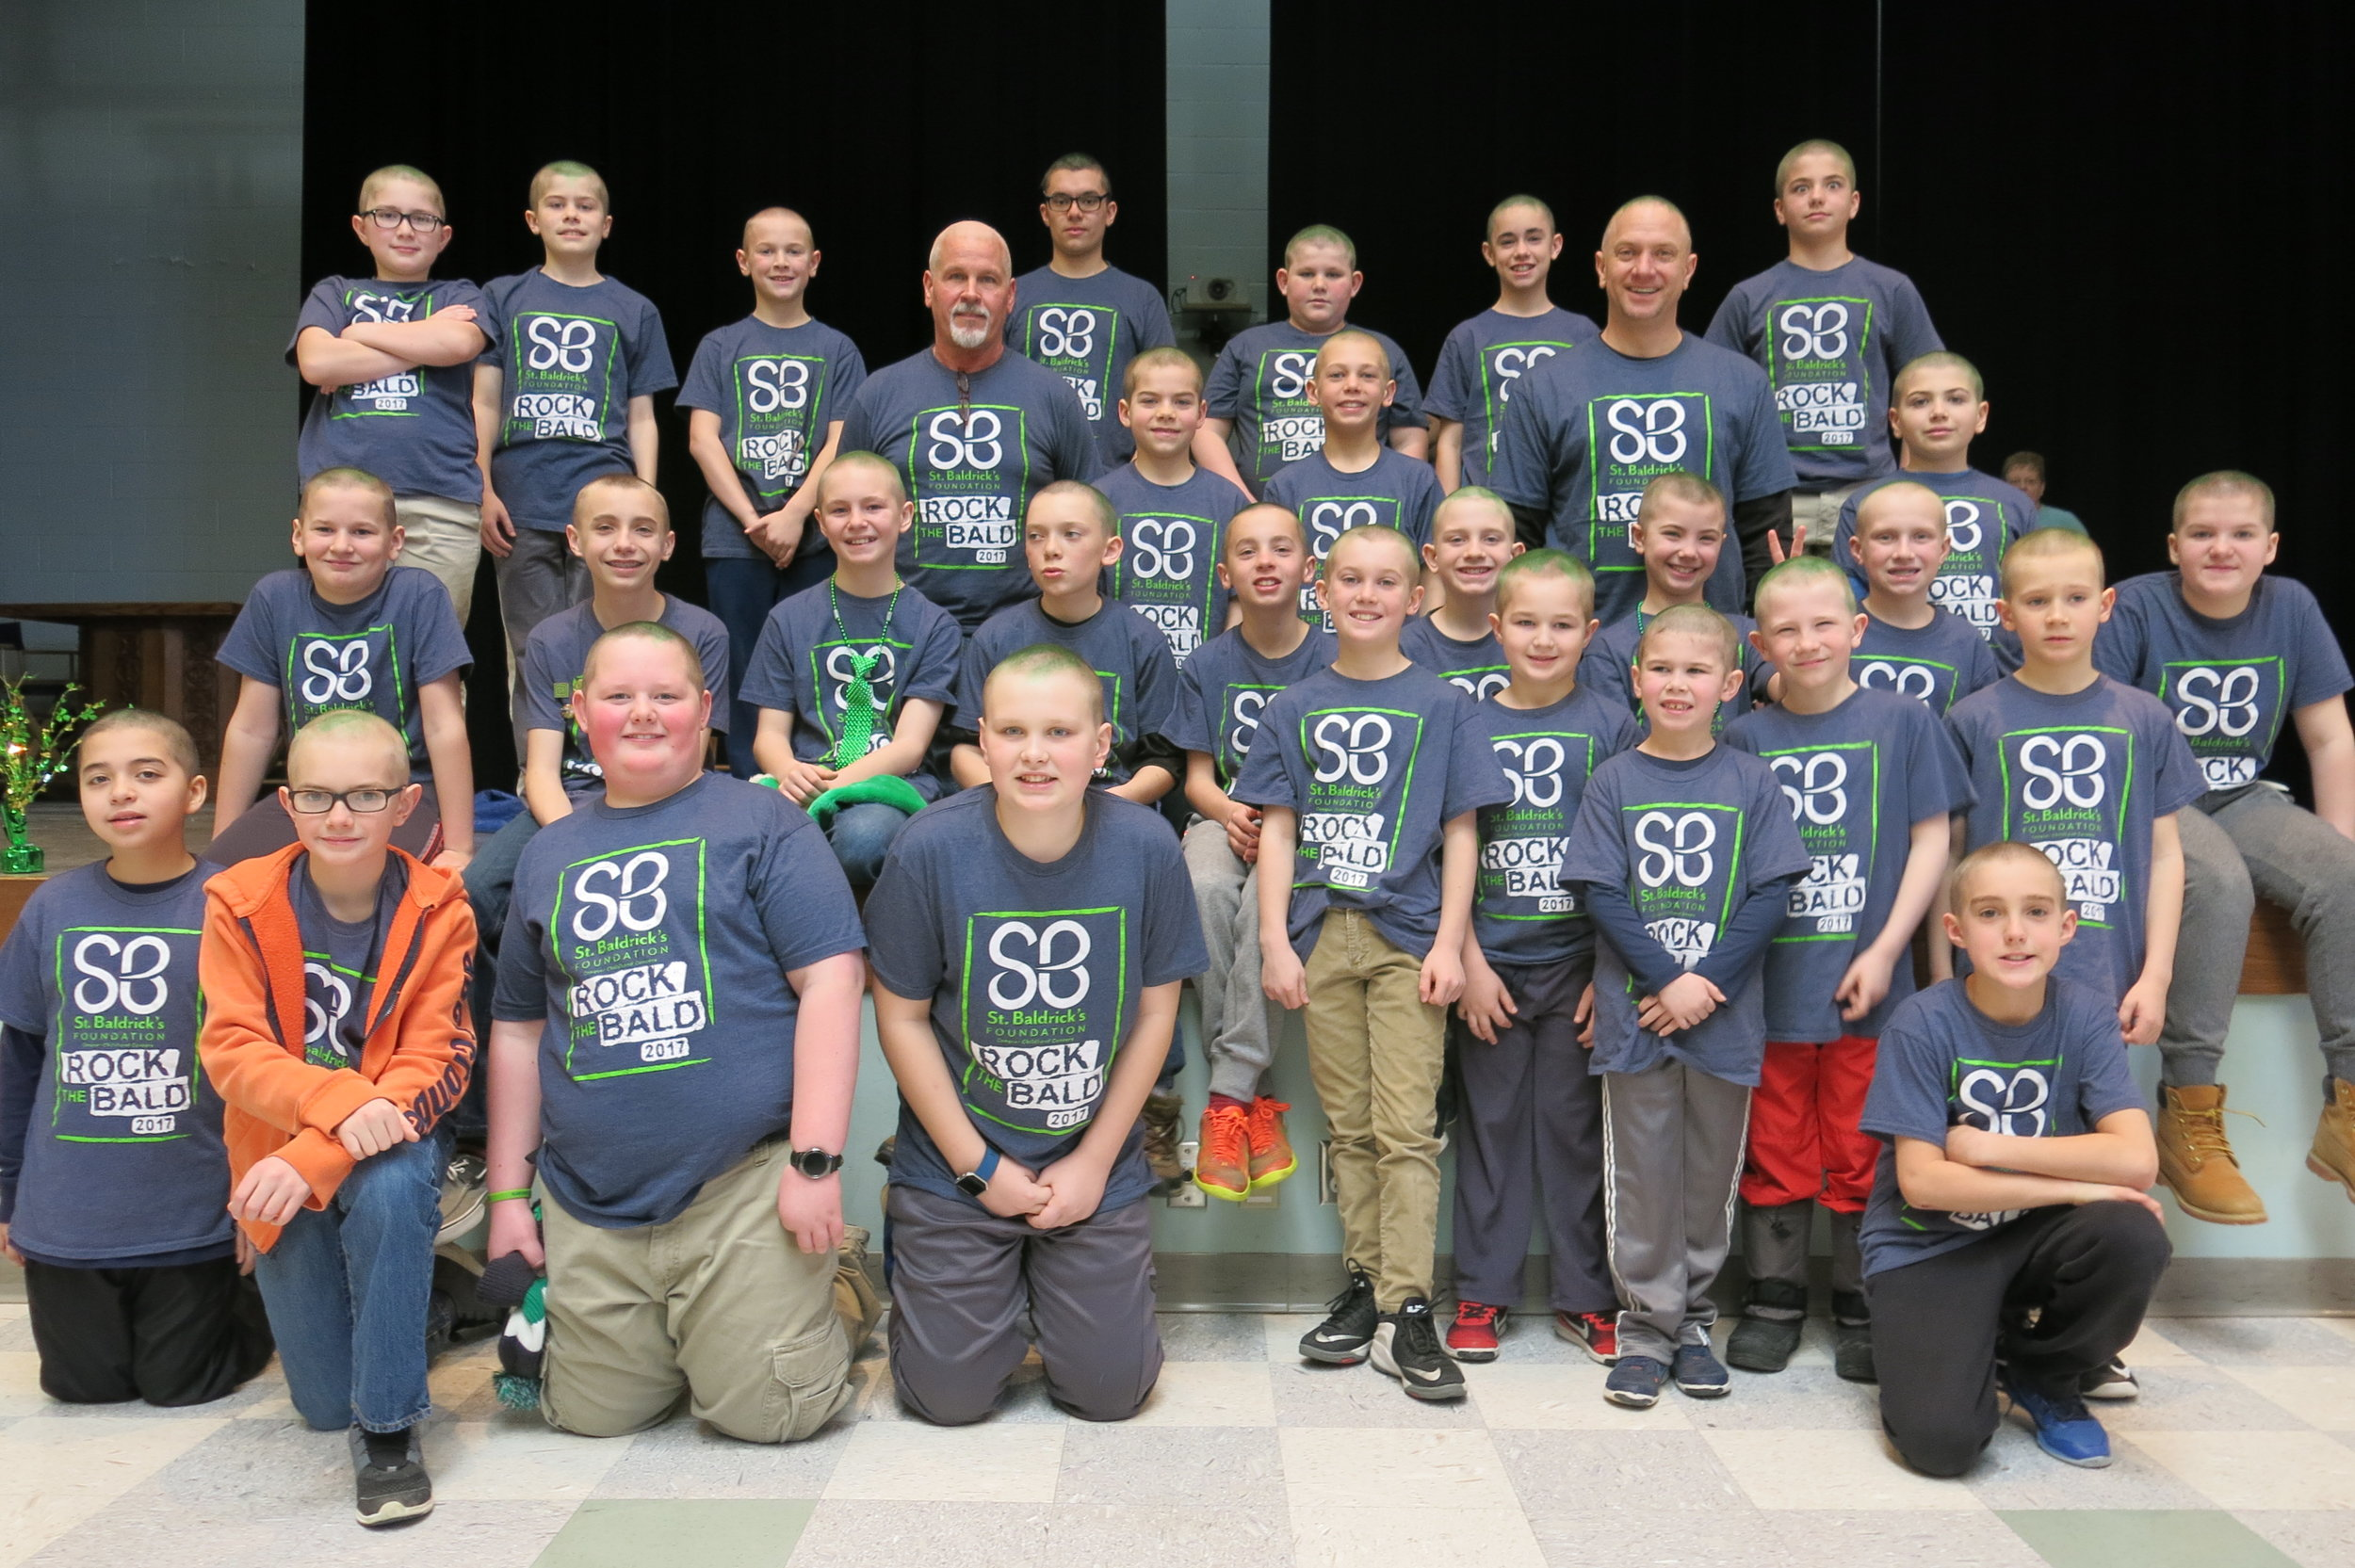 After they braved the shave